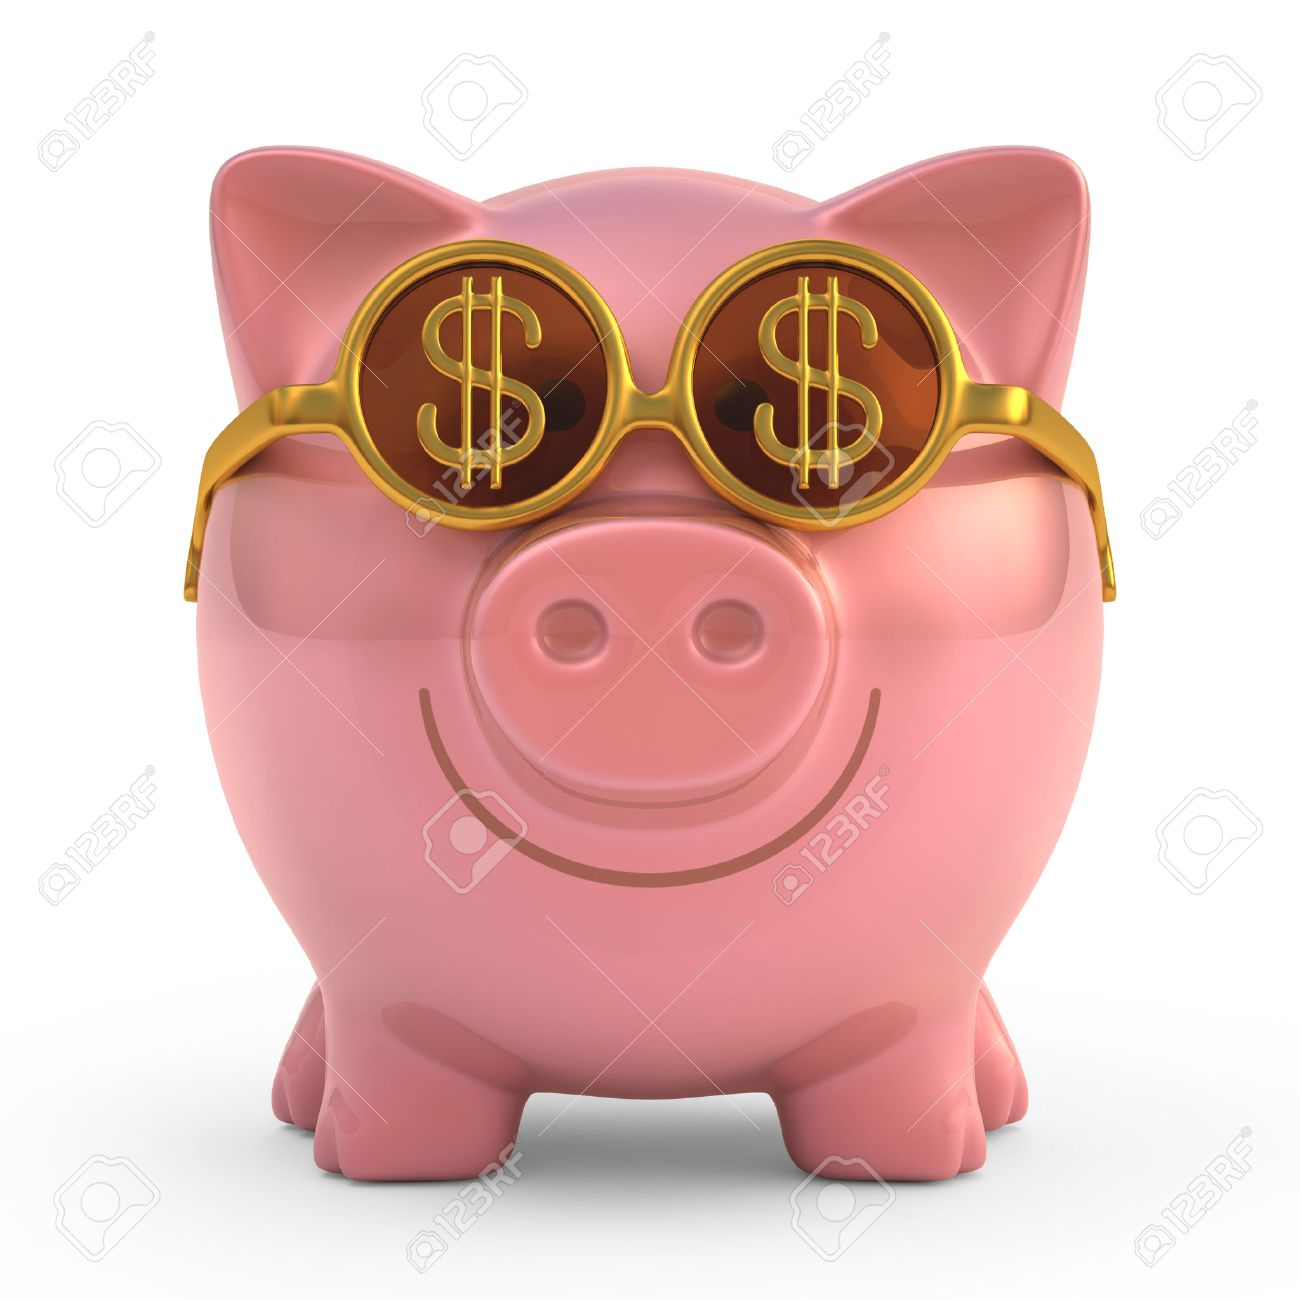 Piggy bank wearing sunglasses with money sign. - 23018853